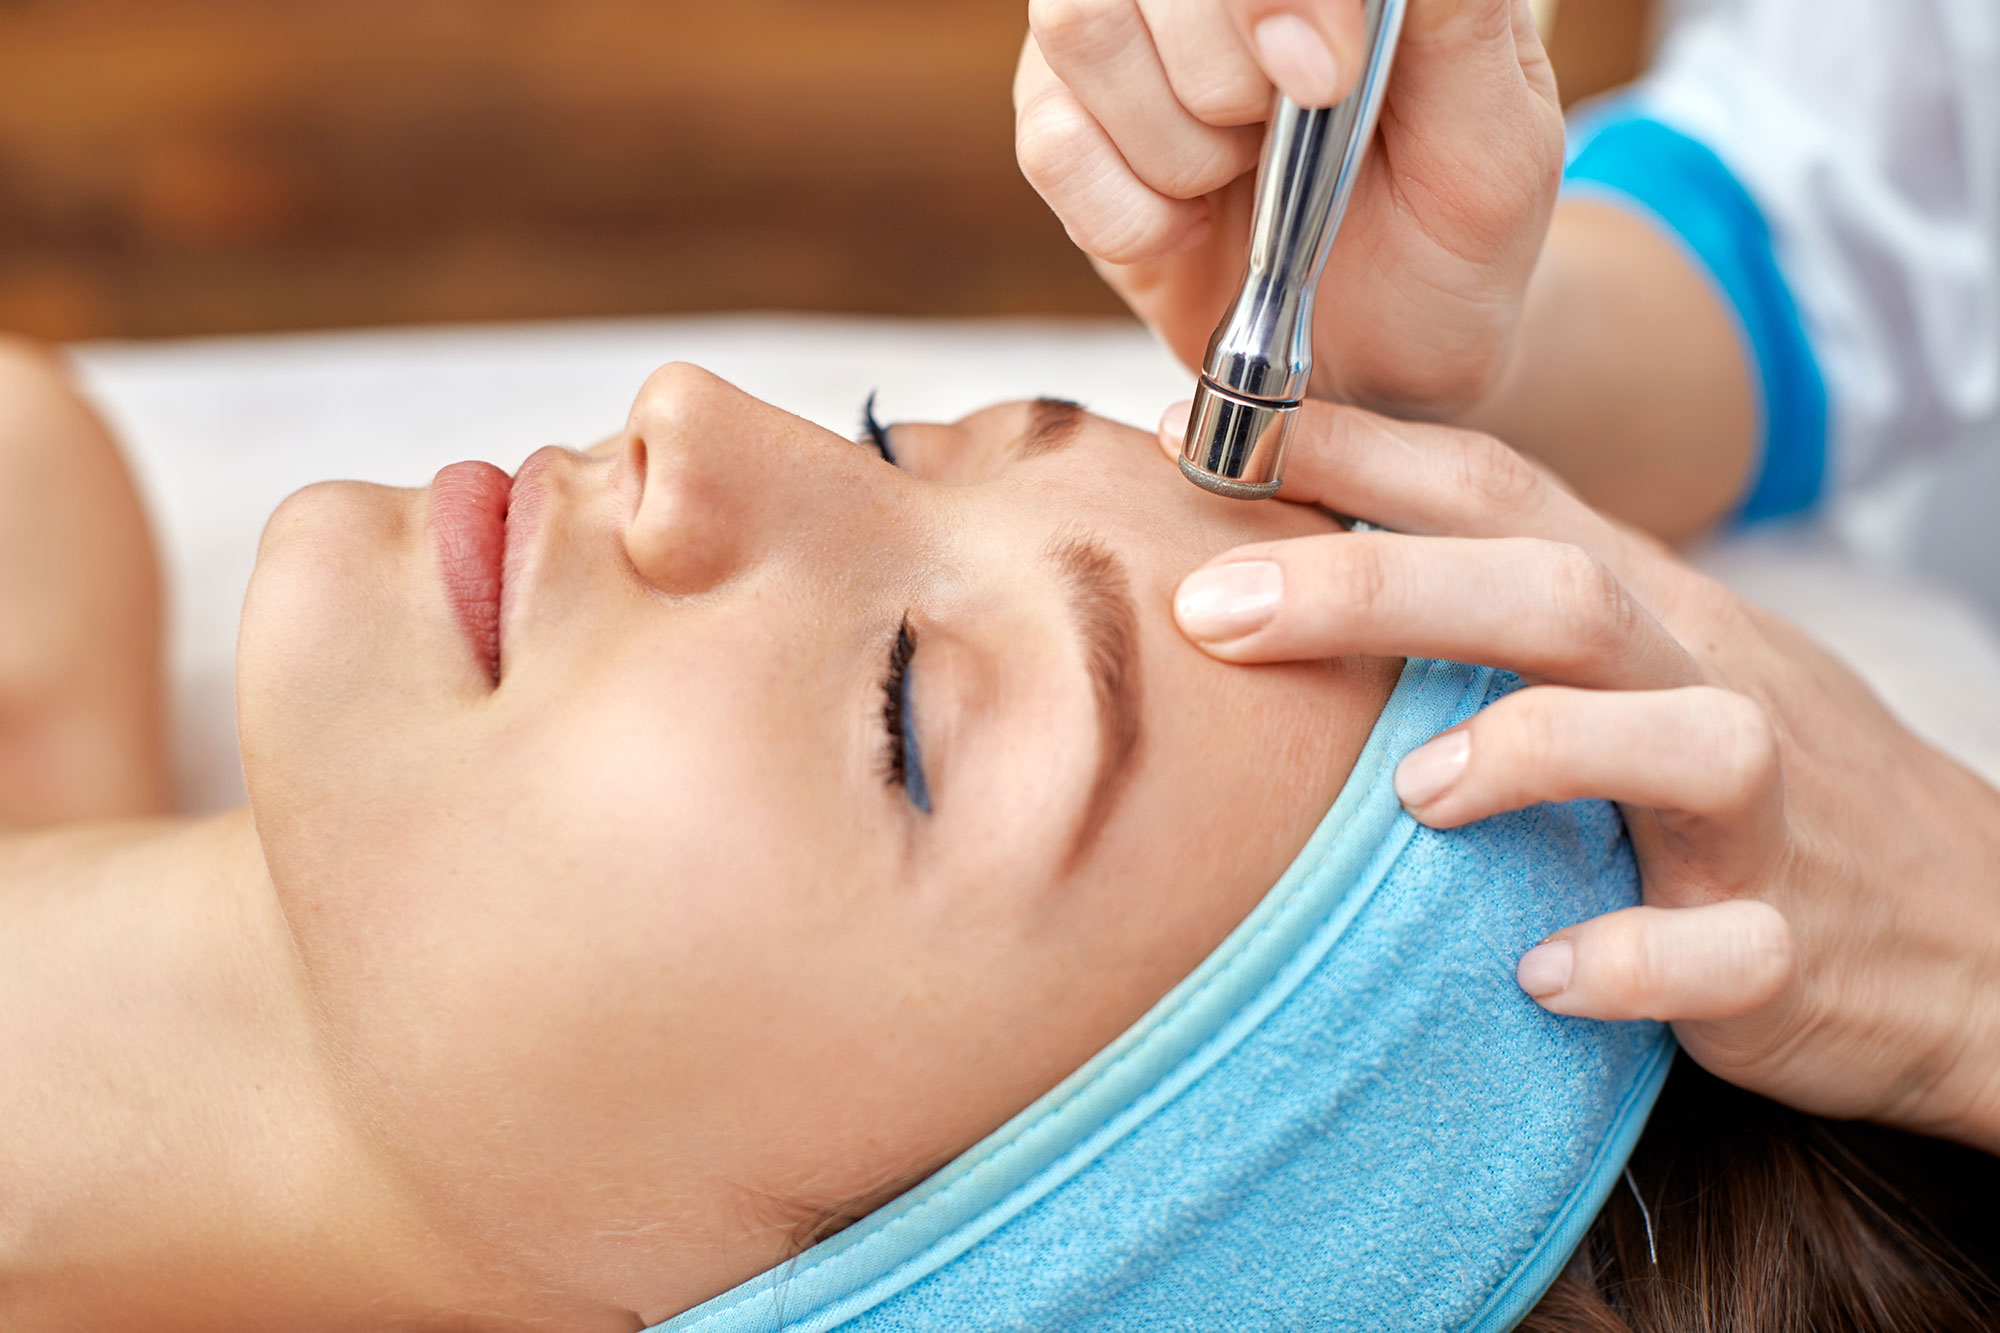 Woman getting microdermabrasion